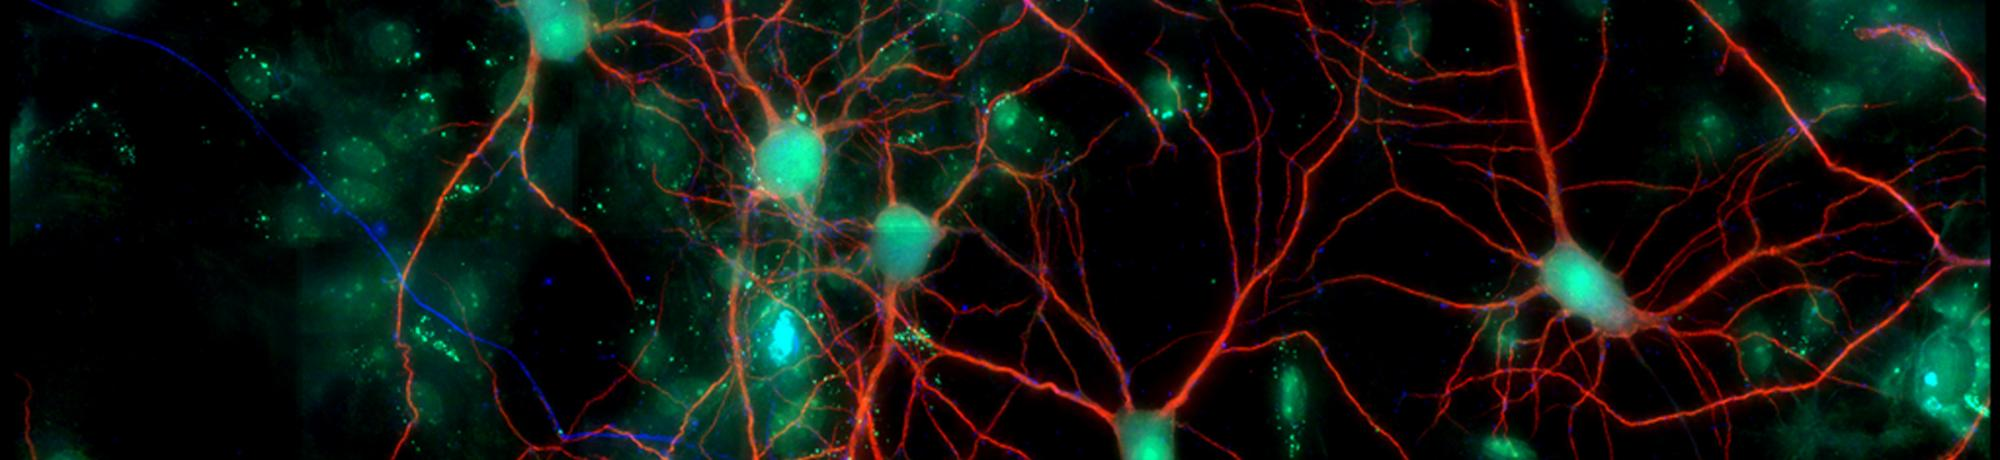 Cell culture of neurons